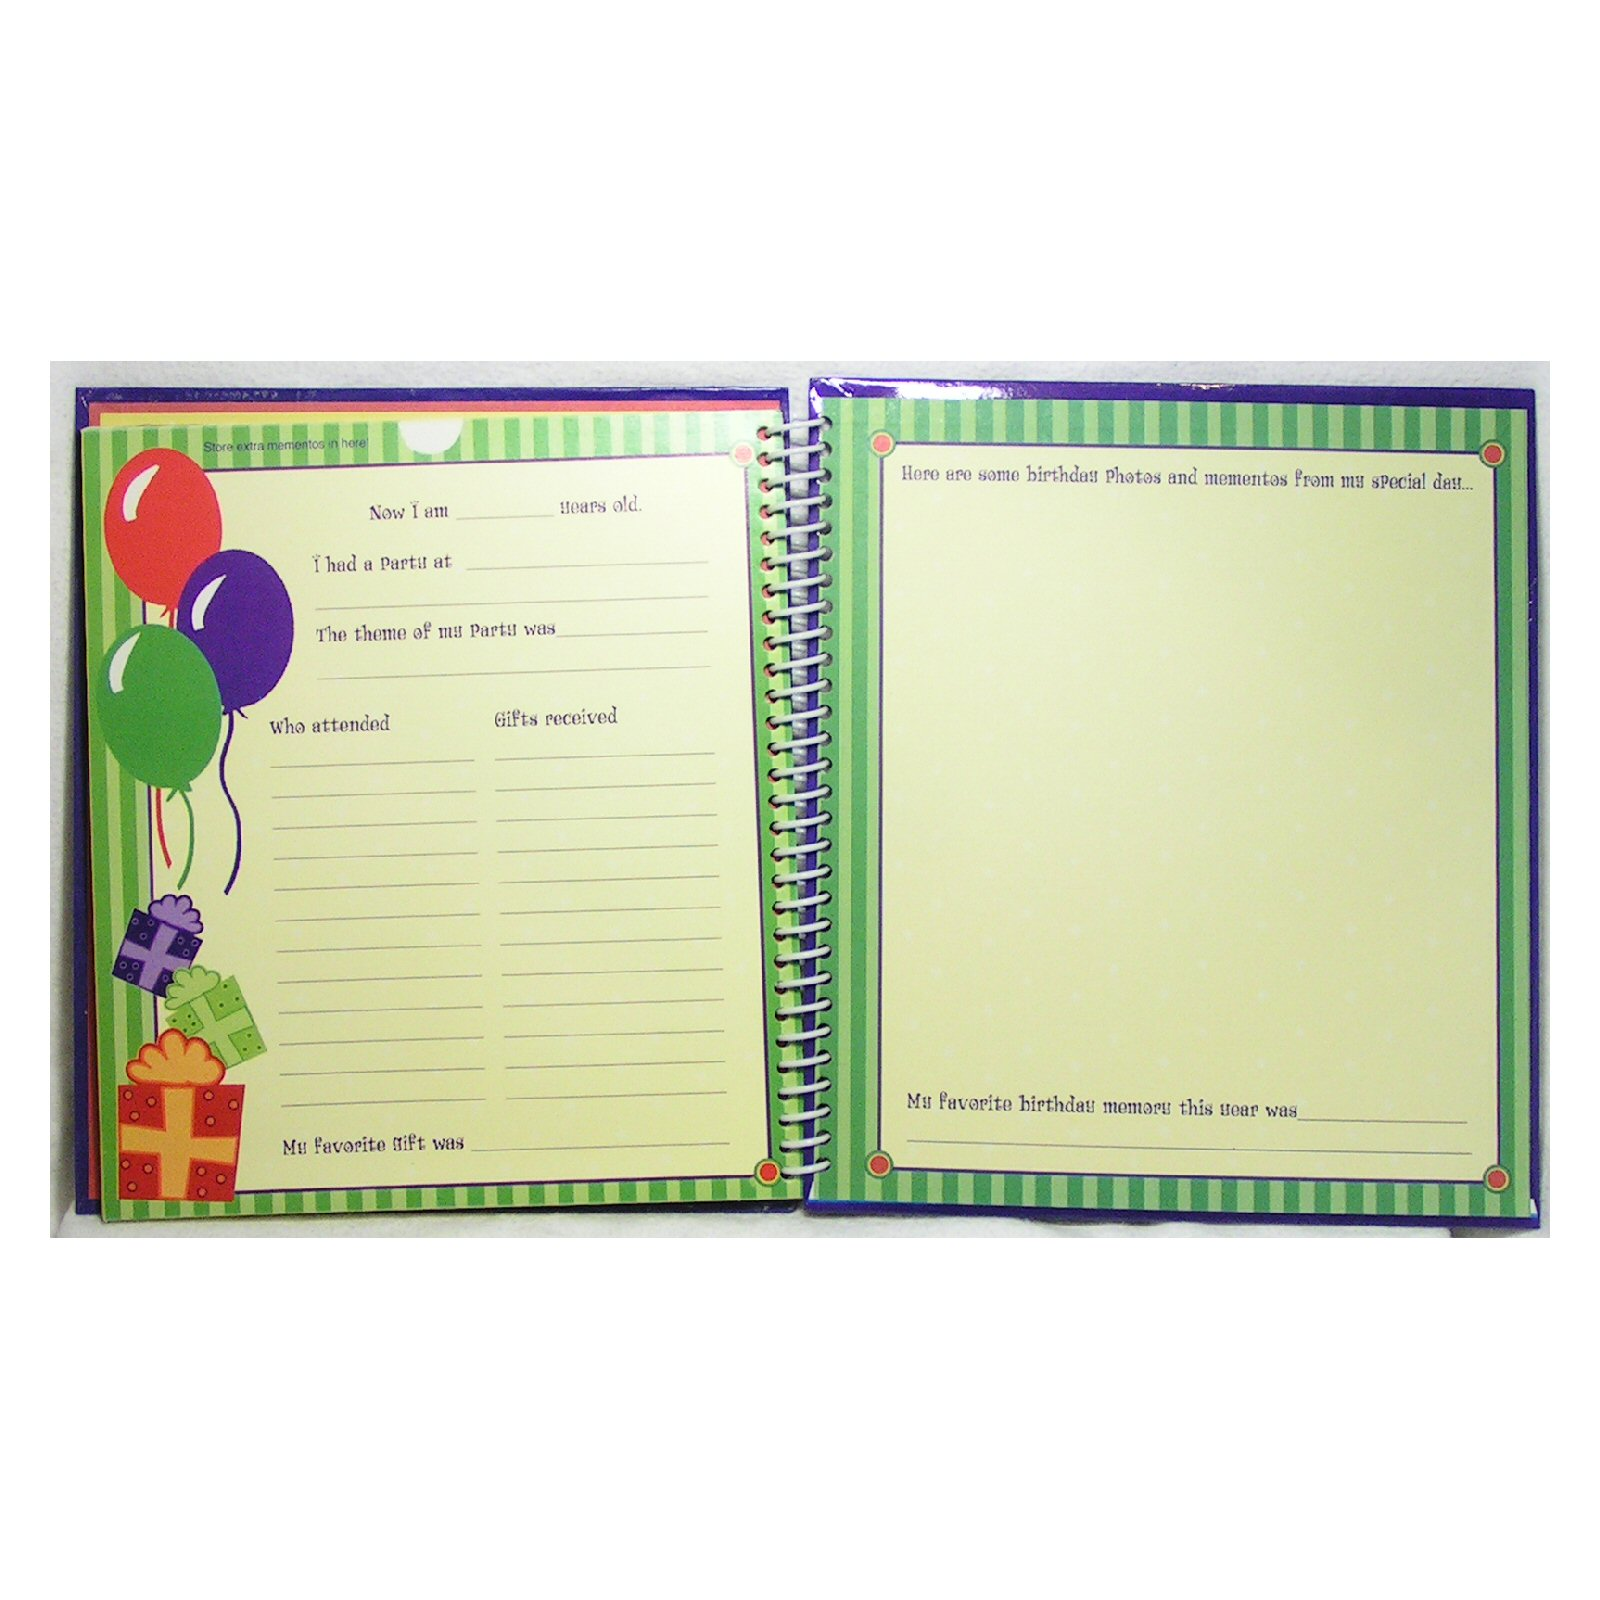 Birthday Memories Keepsake Scrapbook and Photo Album - Click Image to Close